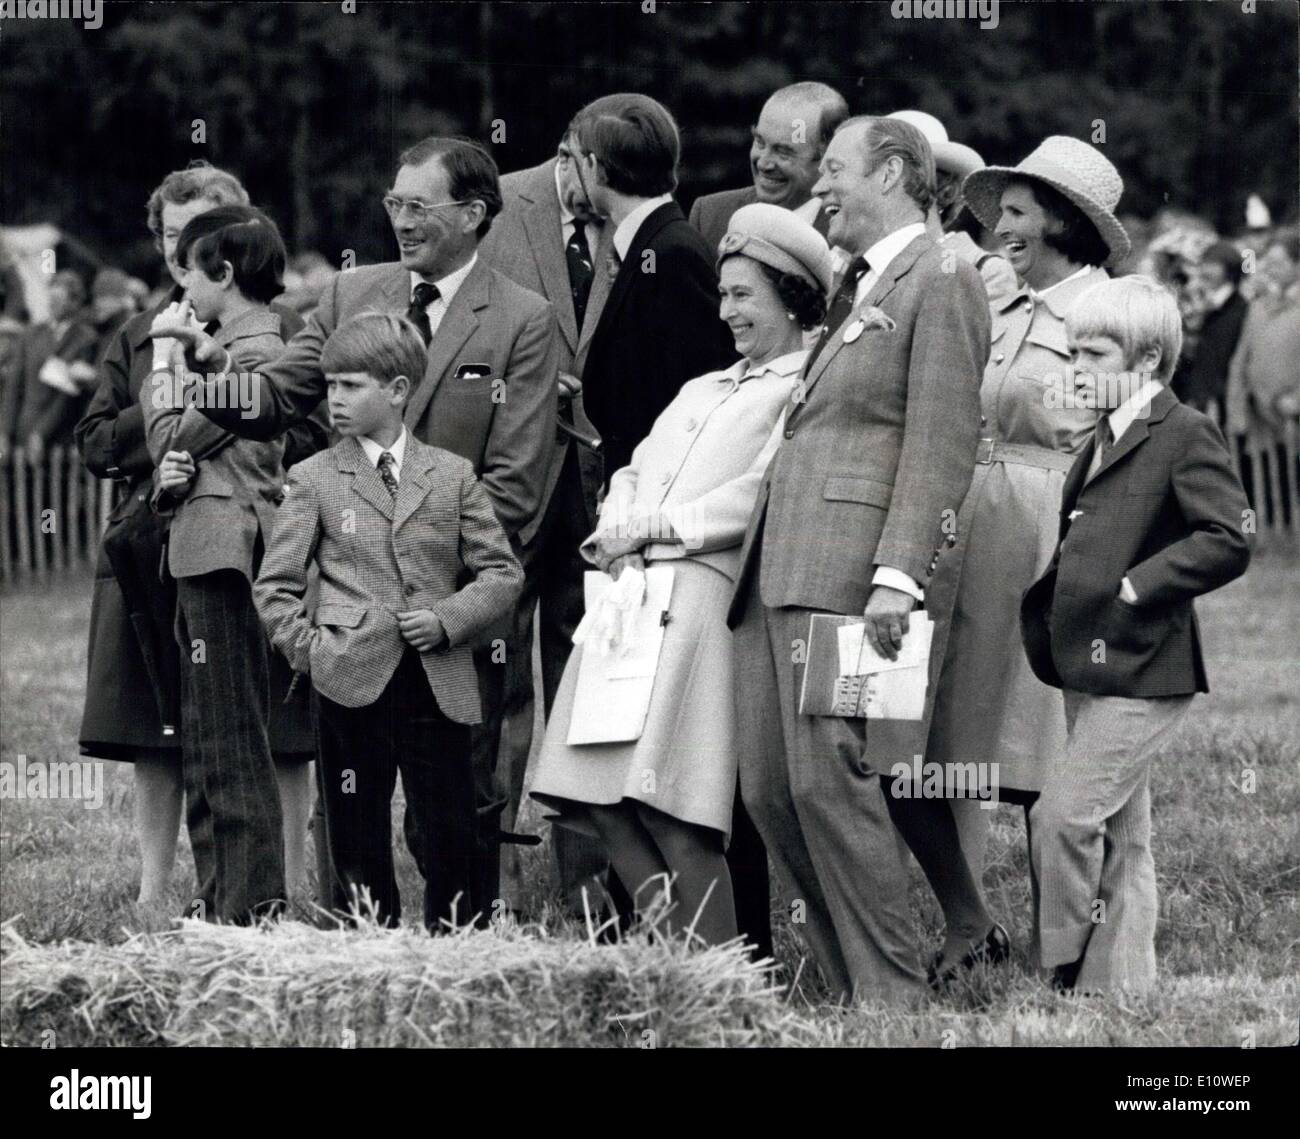 Jun. 26, 1974 - The Royal Family Visit The Country Home of The Duke of Wellington to Attend a Game Fair.: The Queen and Prince Philip with Prince Andrew and Prince Edward Today paid a visit to Stratfield Saye the Duke of Wellington's country home near REading, Berks., Where they attended a Game Fair. They lunched privately with Lady Jane Welliesley (whose name had been linked romantically with Prince Charles), her parents, the Duke and Duchess of Wallington, and her four brothers in a marquee at the Game Fair in the grounds of the Wellington's 60,000- acre estate - Stock Image